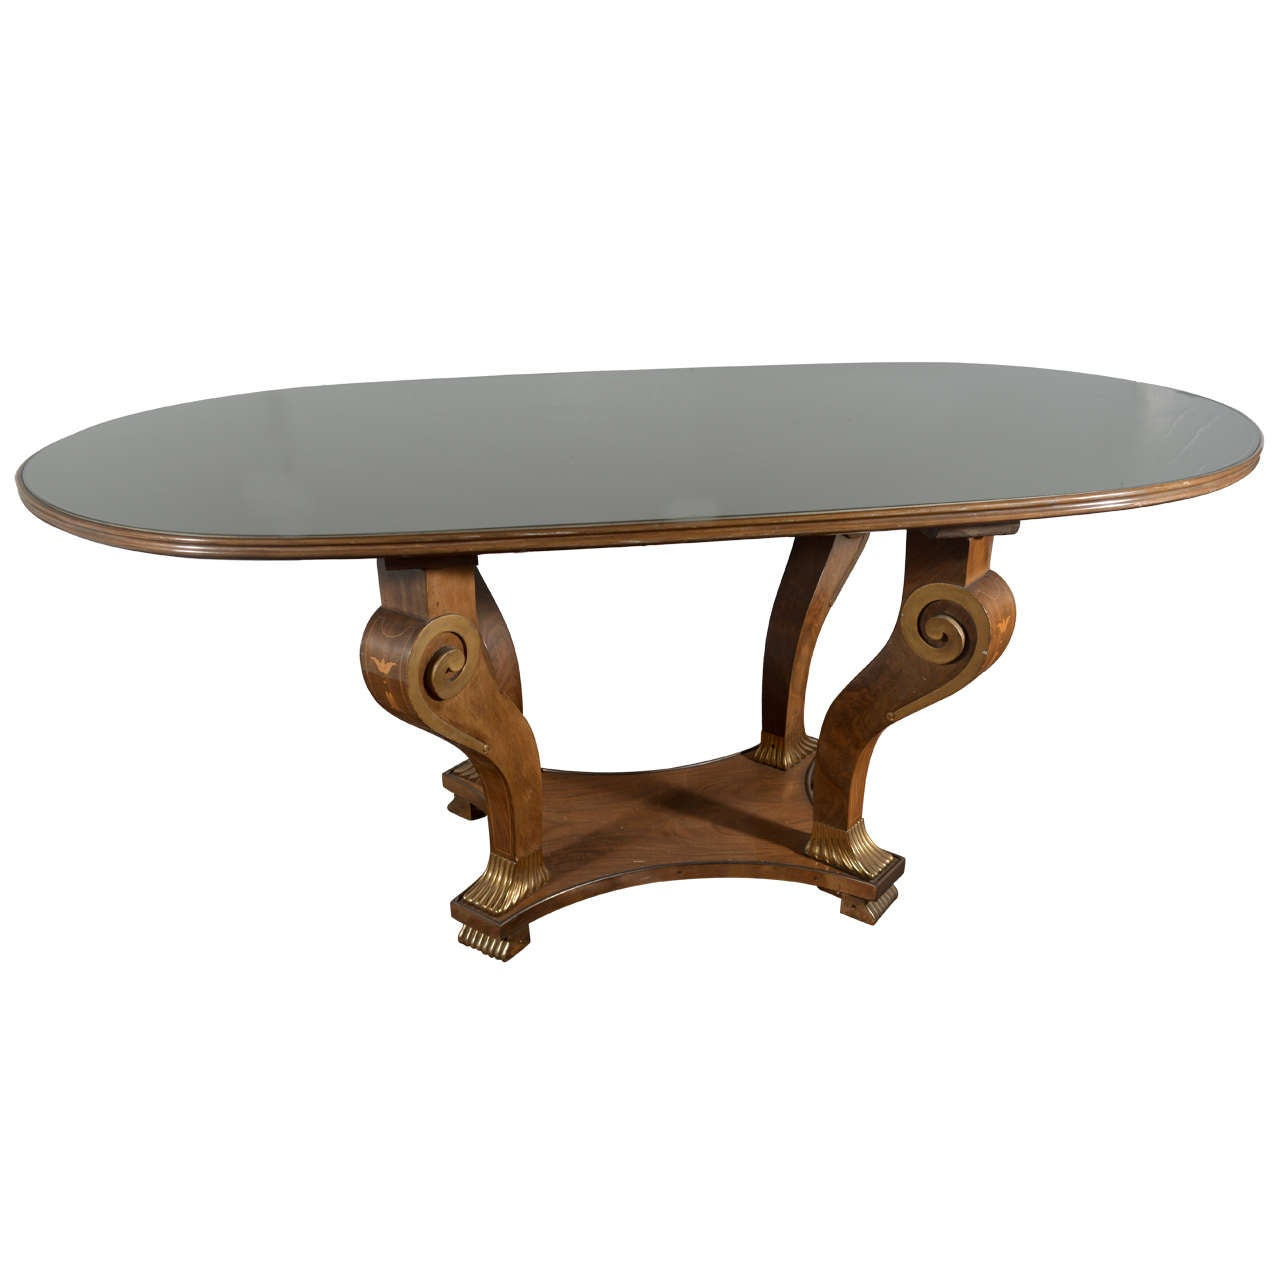 Art deco style dining table with bronze feet at 1stdibs for Styling a dining table